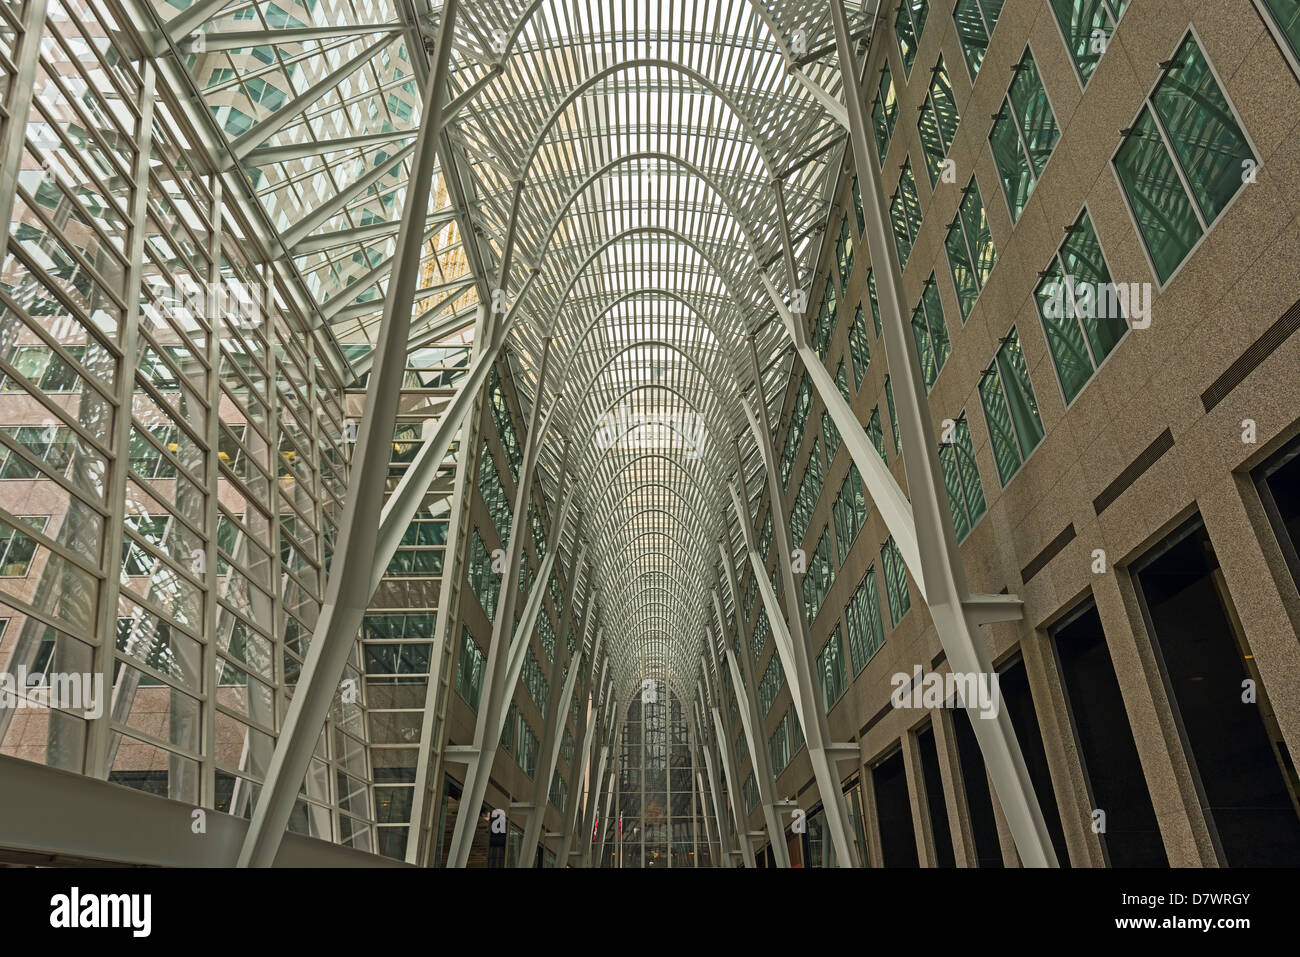 Brookfield Place (formerly BCE Place) - modern architecture in financial district, Toronto, Canada - Stock Image